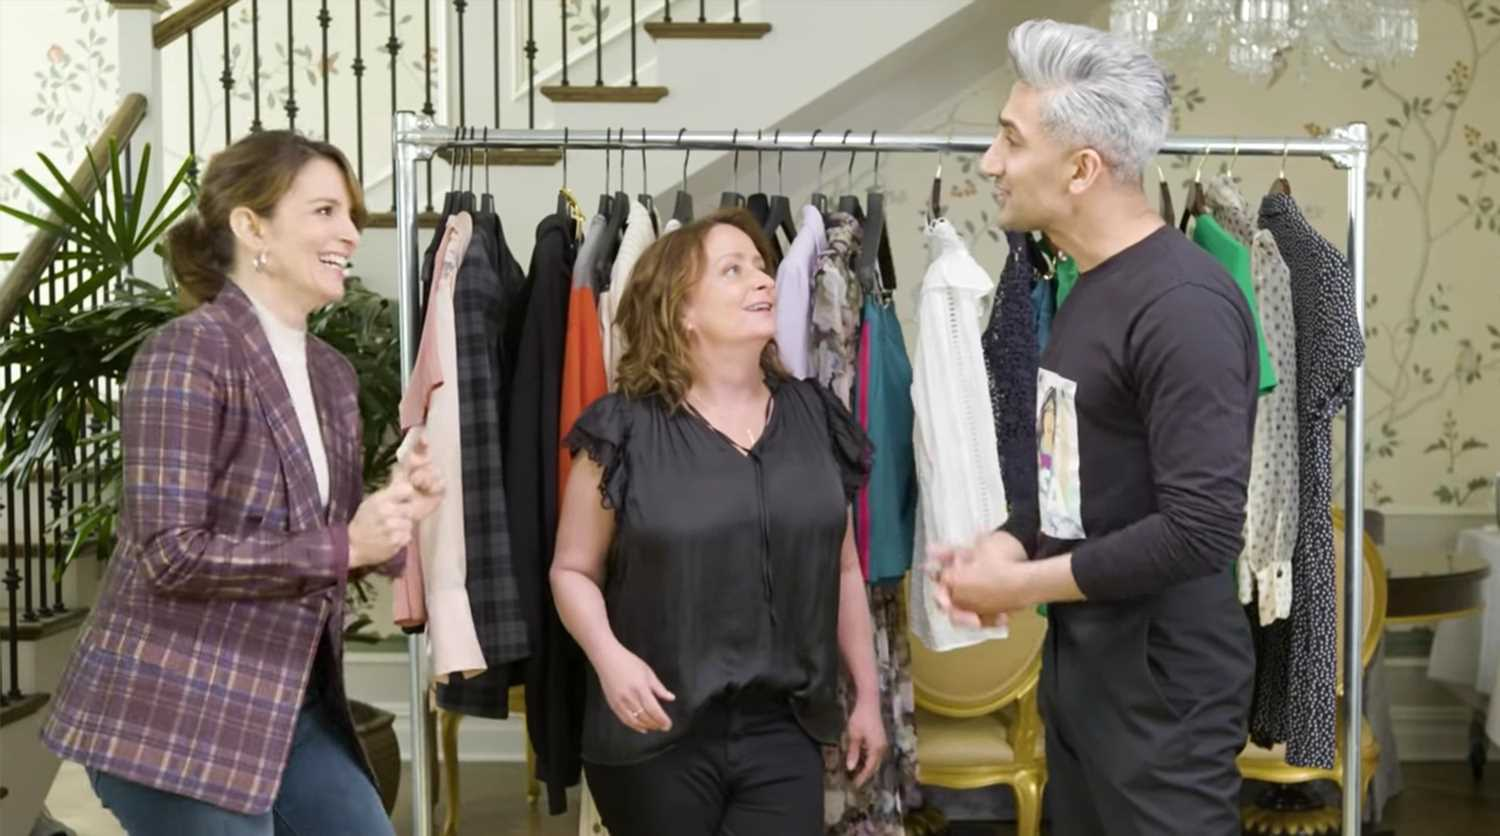 Queer Eye's Tan France gets Tina Fey, Rachel Dratch to wear mom jeans